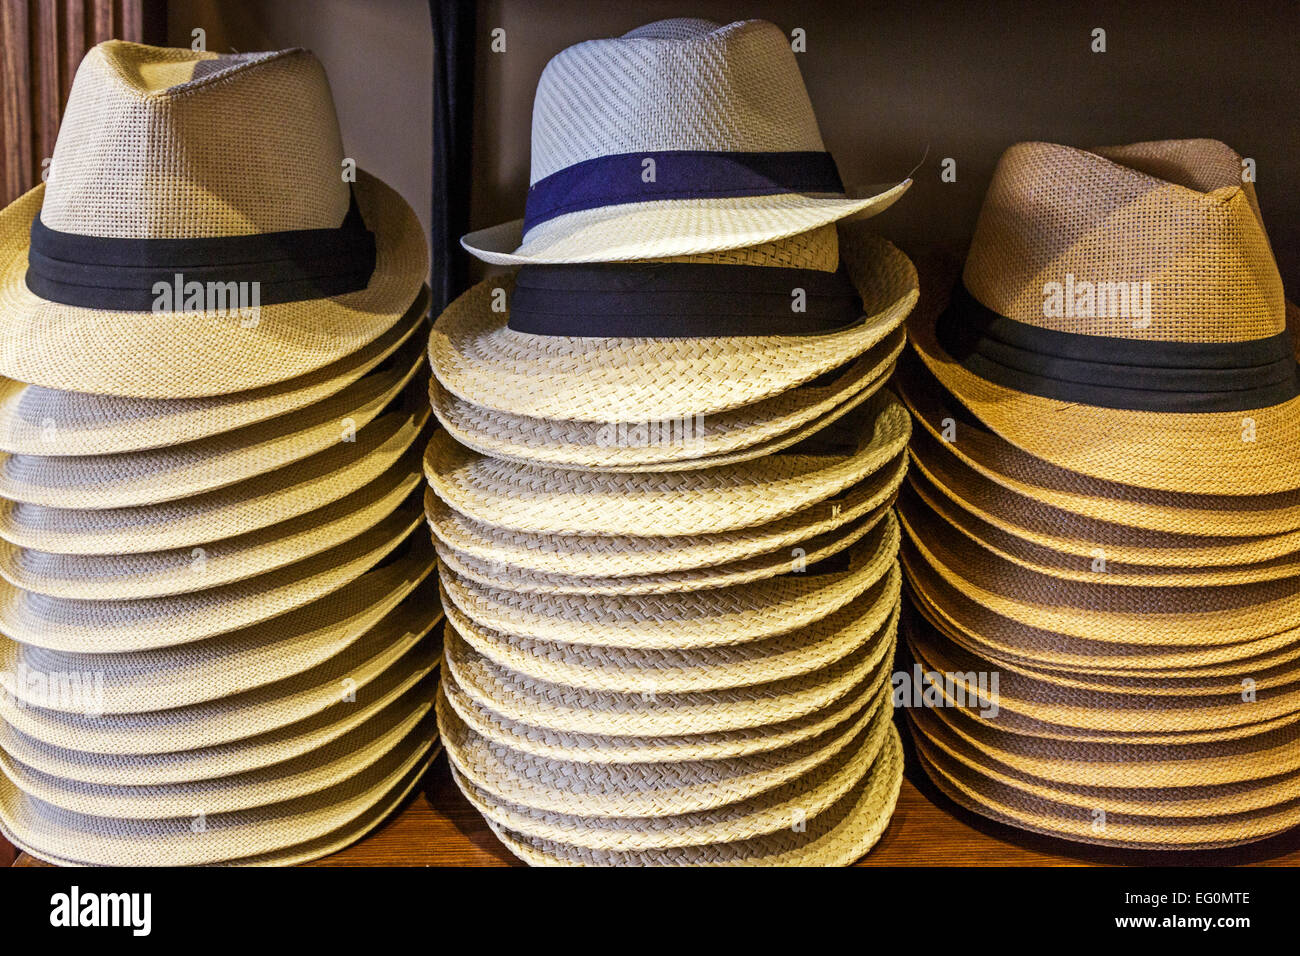 Selection of gent s straw summer hats for sale Stock Photo  78692334 ... e077a42b98b